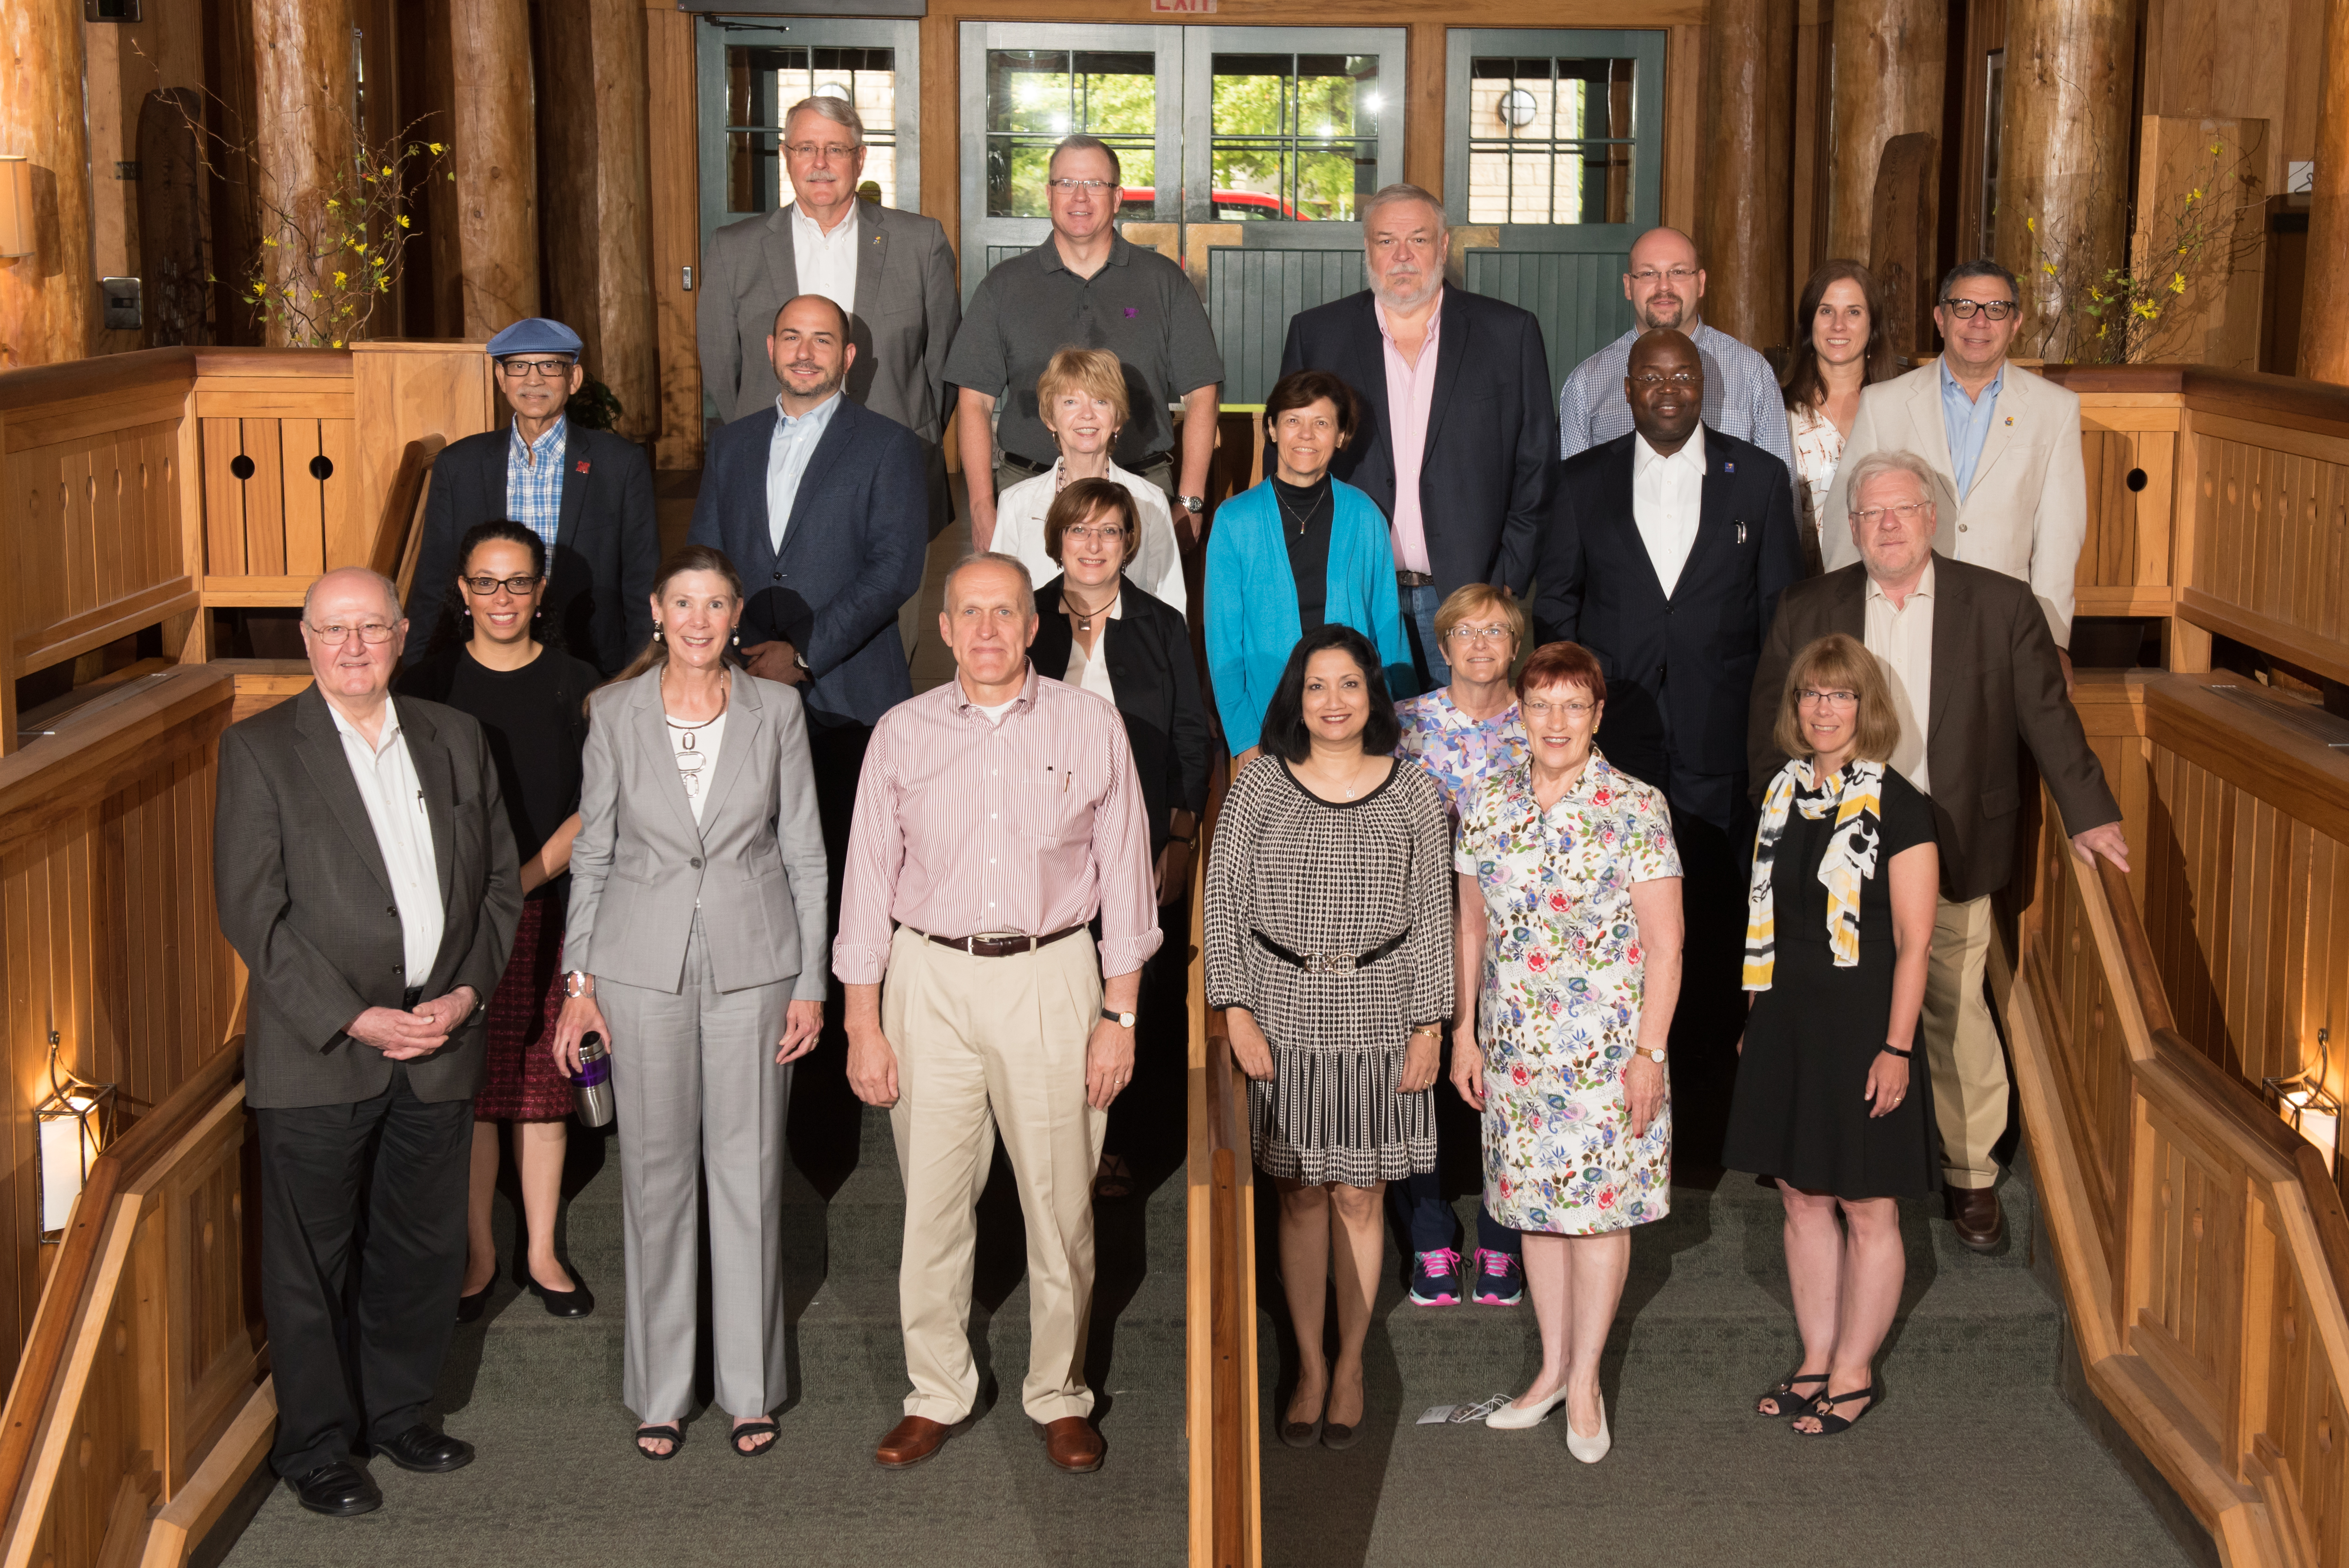 Group photo from 2016 retreat.  First row, left to right: Brian Foster, April Mason, Kim Wilcox, Neeli Bendapudi, Mabel Rice, Sarah Larsen Second row: Yo Jackson, Sara Rosen, Sally Maliski, John Colombo Third row: Prem Paul, Carl Lejuez, Mary Lee Hummert, Deb Teeter, Abiodun Akinwuntan Fourth row: Joe Heppert, Peter Dorhout, Alex Barker, Jerry Zamzow, Suzanne Scales, Rick Barohn